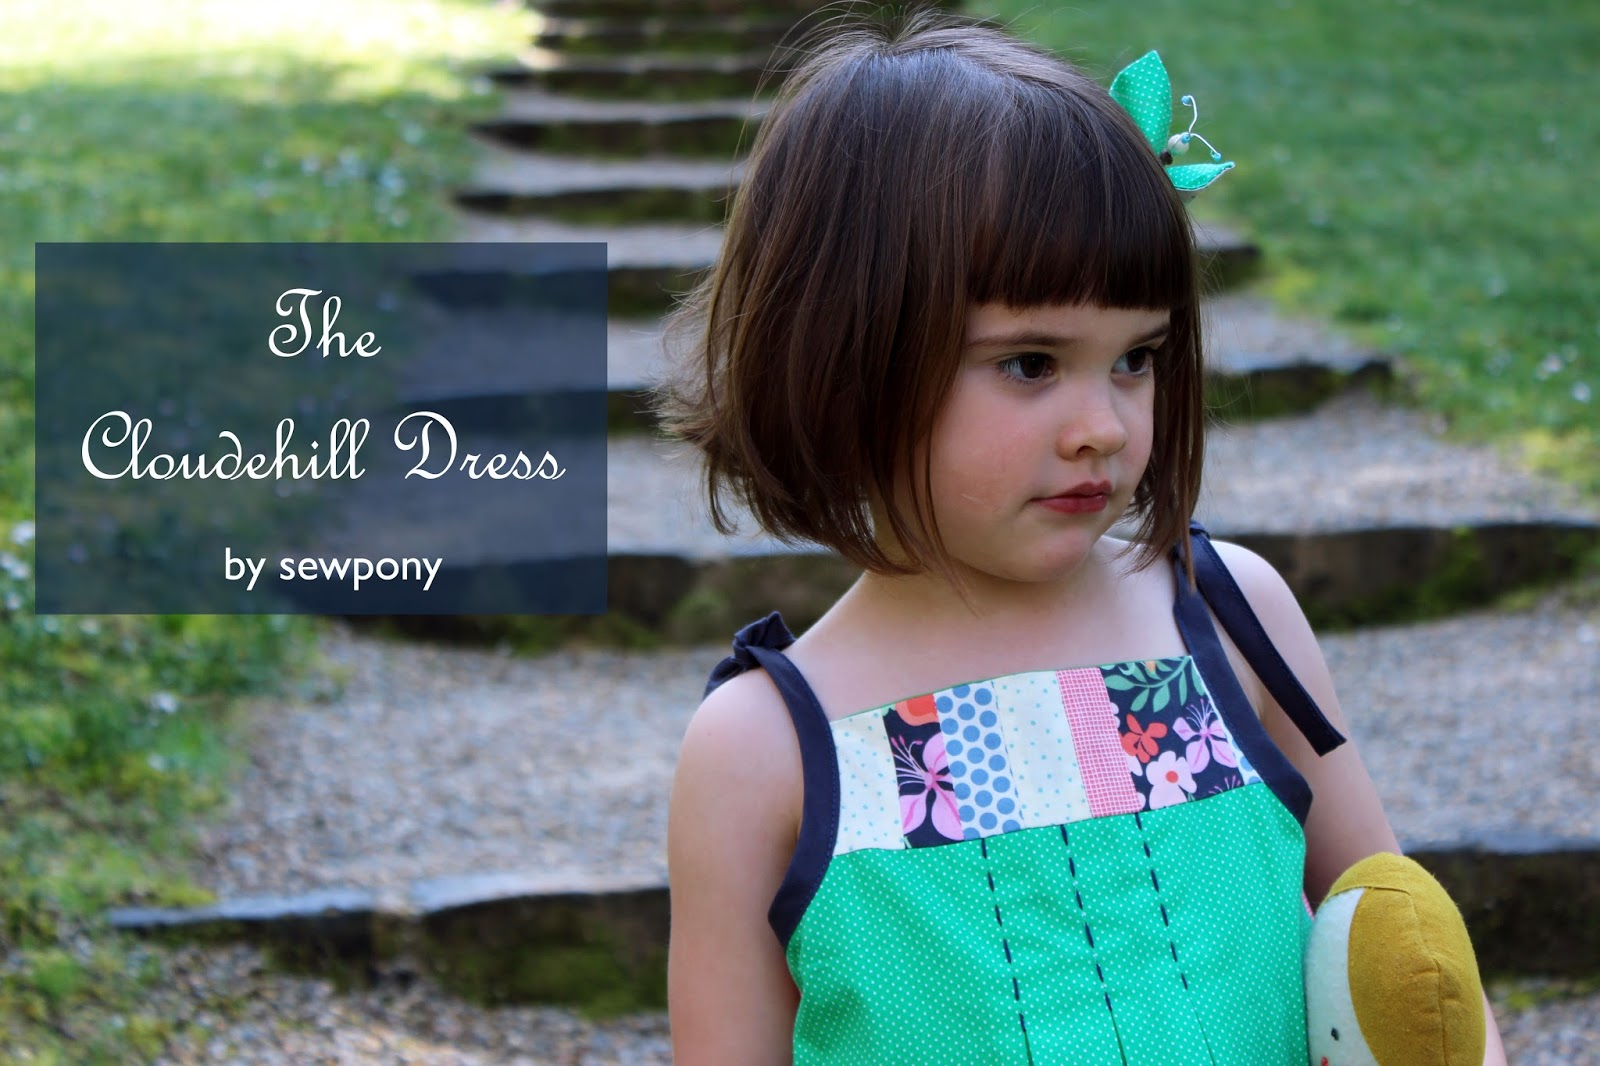 d93d572c587 The Cloudehill Dress is my creation for the Oliver + S popover dress remix  challenge!. The popover dress pattern is a sweet and simple A-line dress  with ...